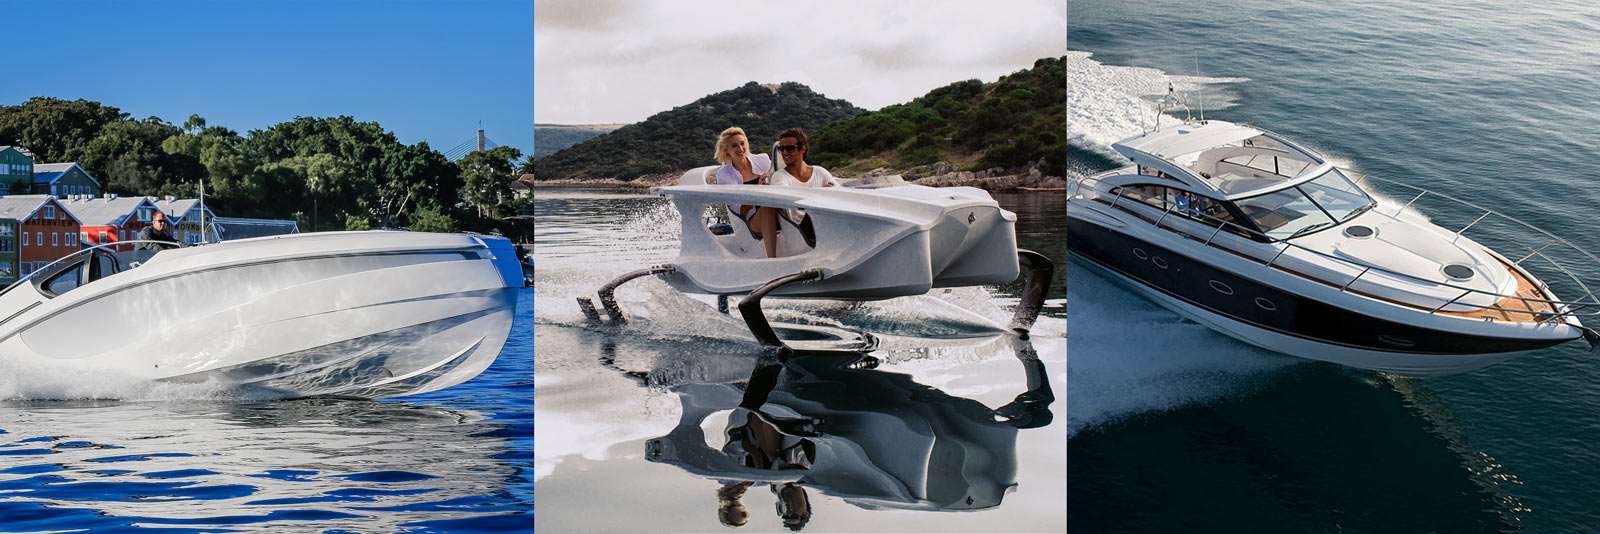 About The Boutique Boat Company